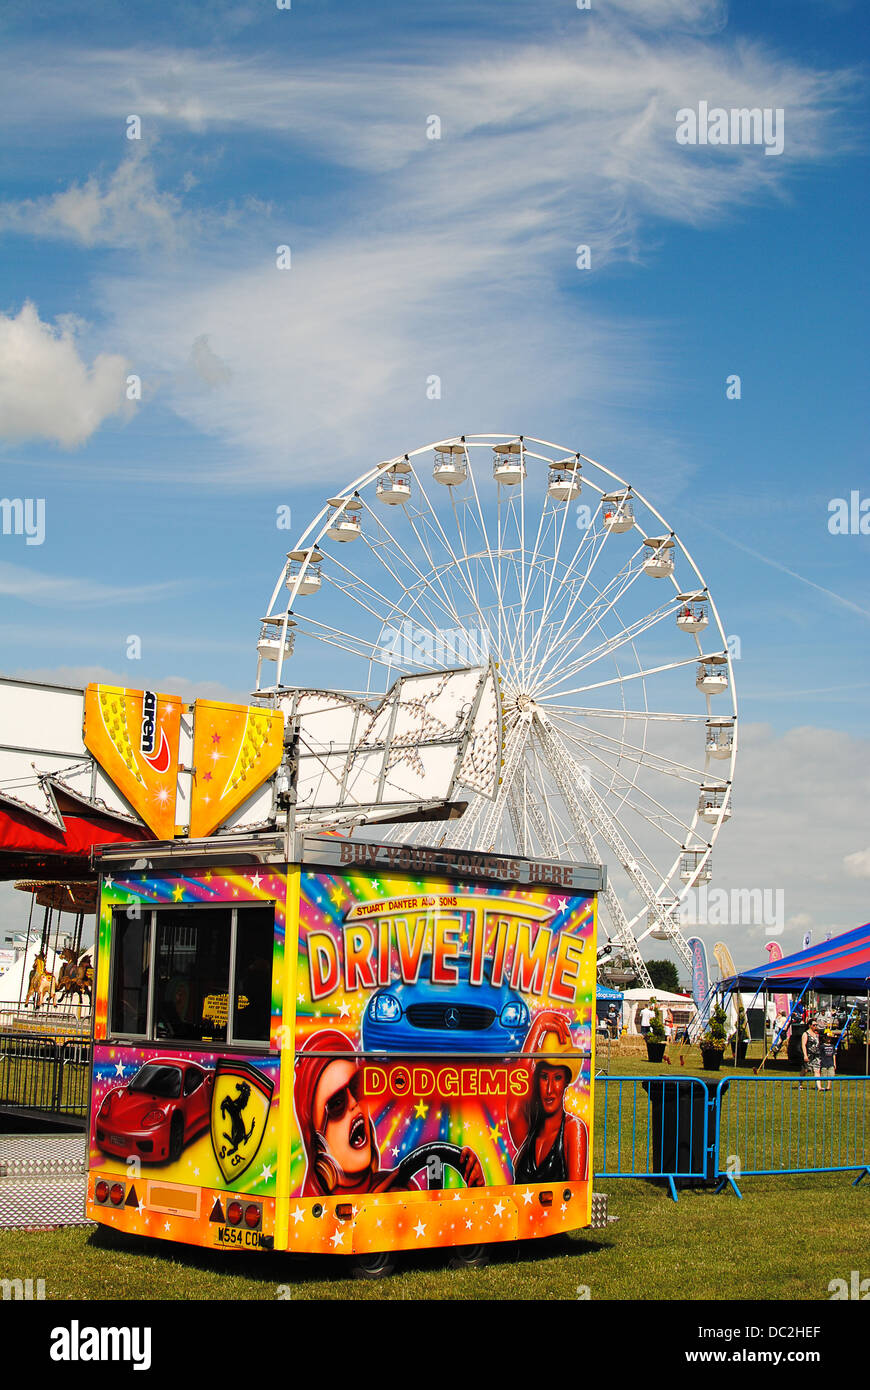 Big wheel at Silverstone - Stock Image